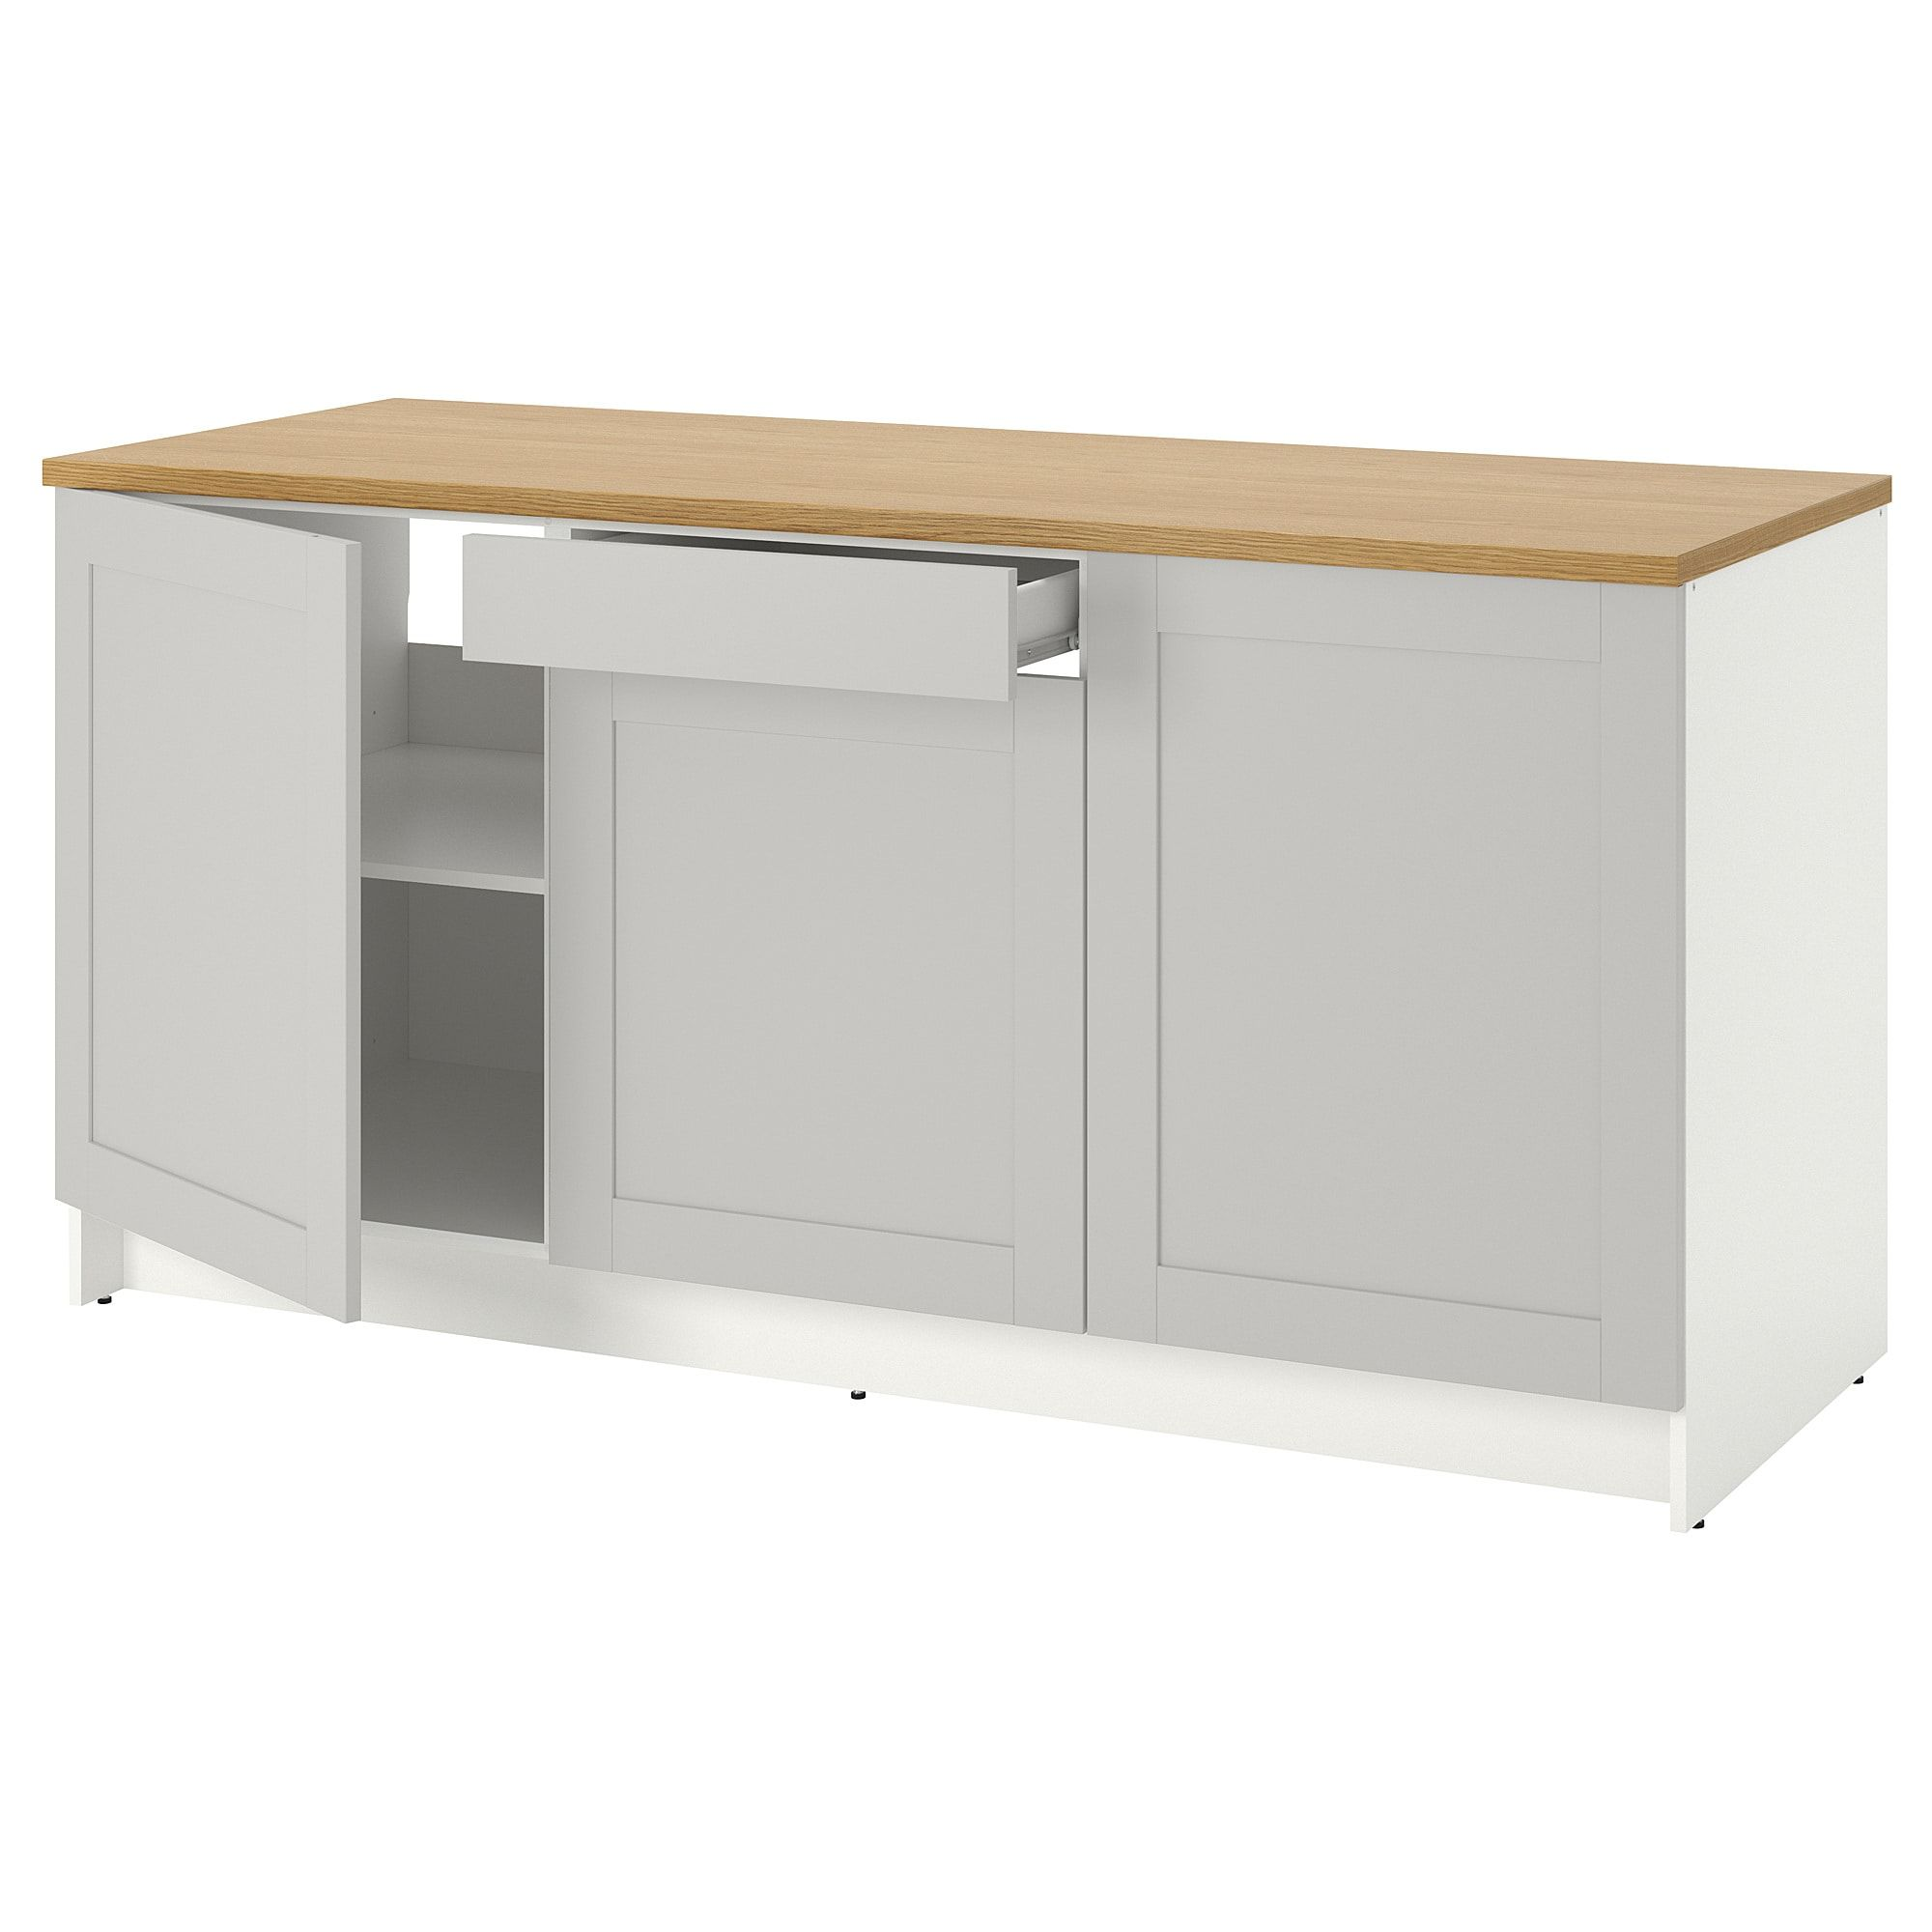 Knoxhult Base Cabinet With Doors And Drawer Gray 72x24x36 Kitchen Modular Freestanding Cooker Cabinet Doors